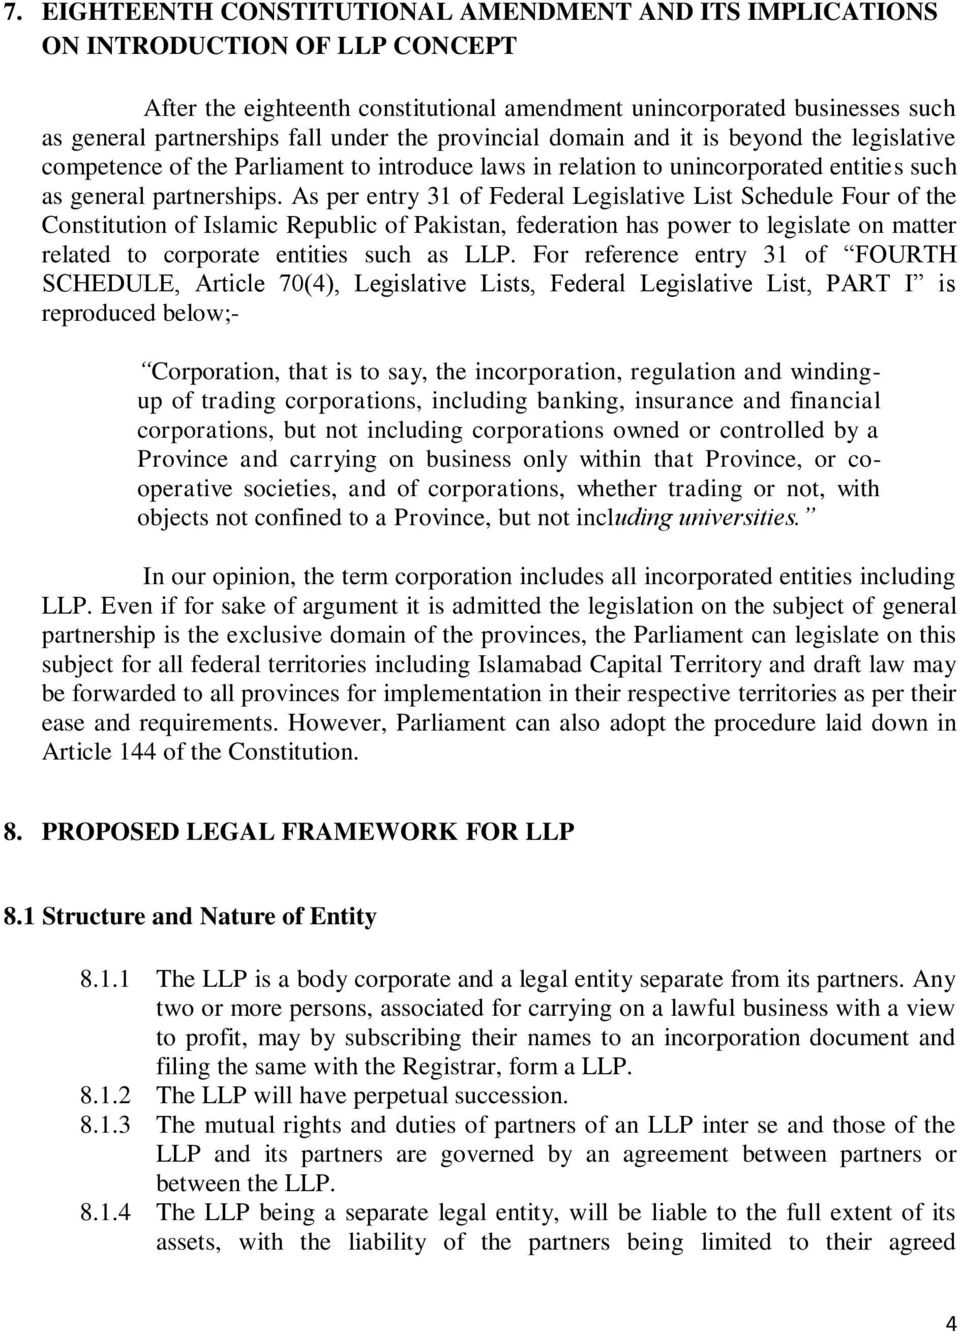 As per entry 31 of Federal Legislative List Schedule Four of the Constitution of Islamic Republic of Pakistan, federation has power to legislate on matter related to corporate entities such as LLP.